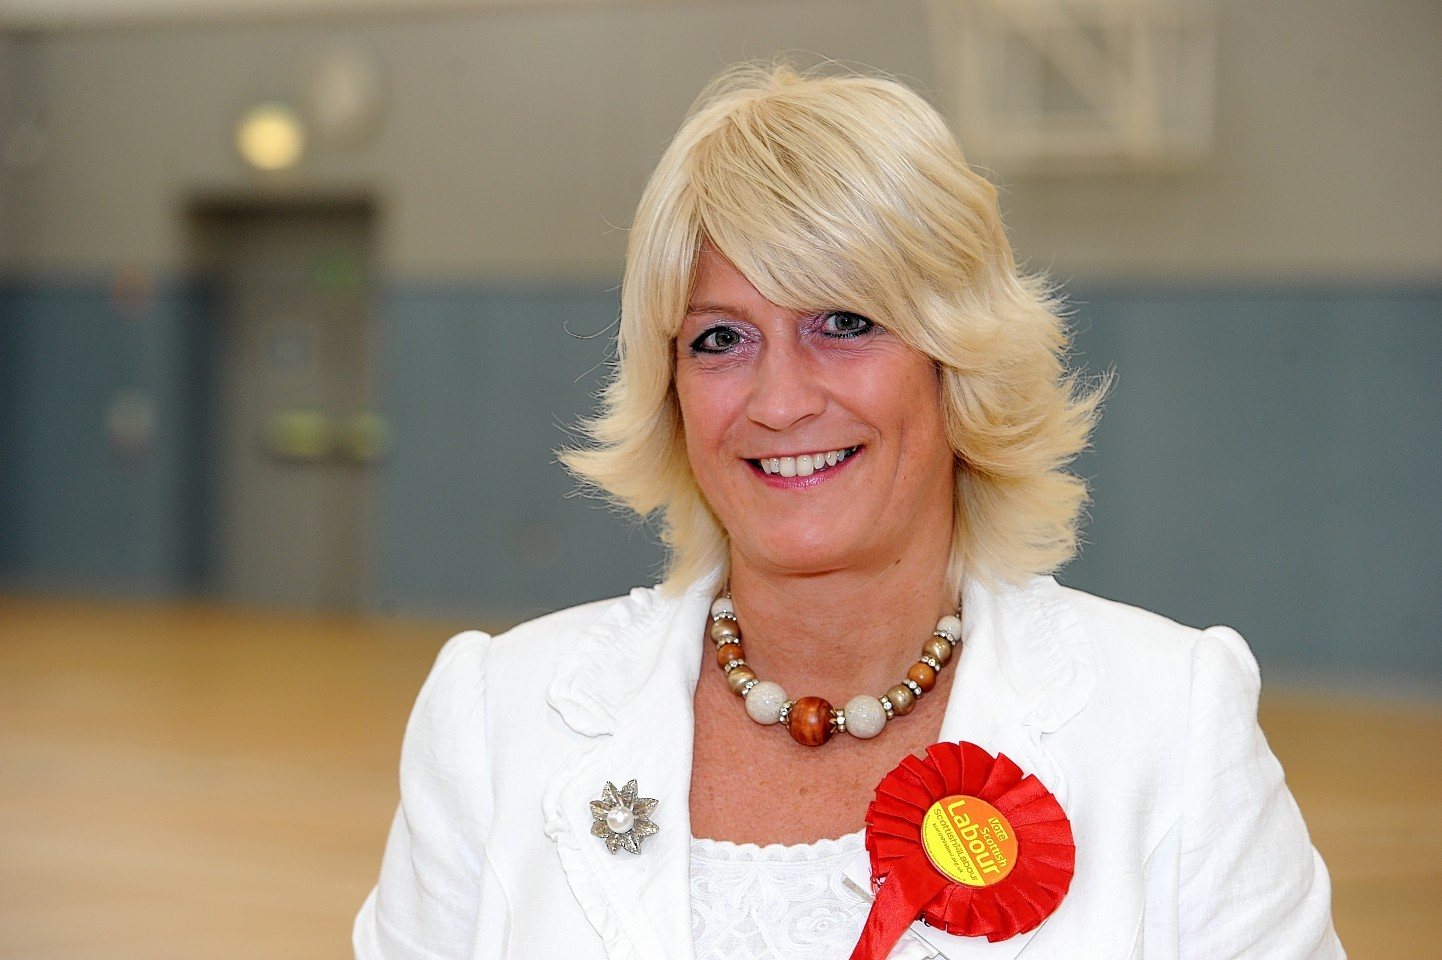 Councillor Angela Taylor agreed teacher shortages had contributed to the problem